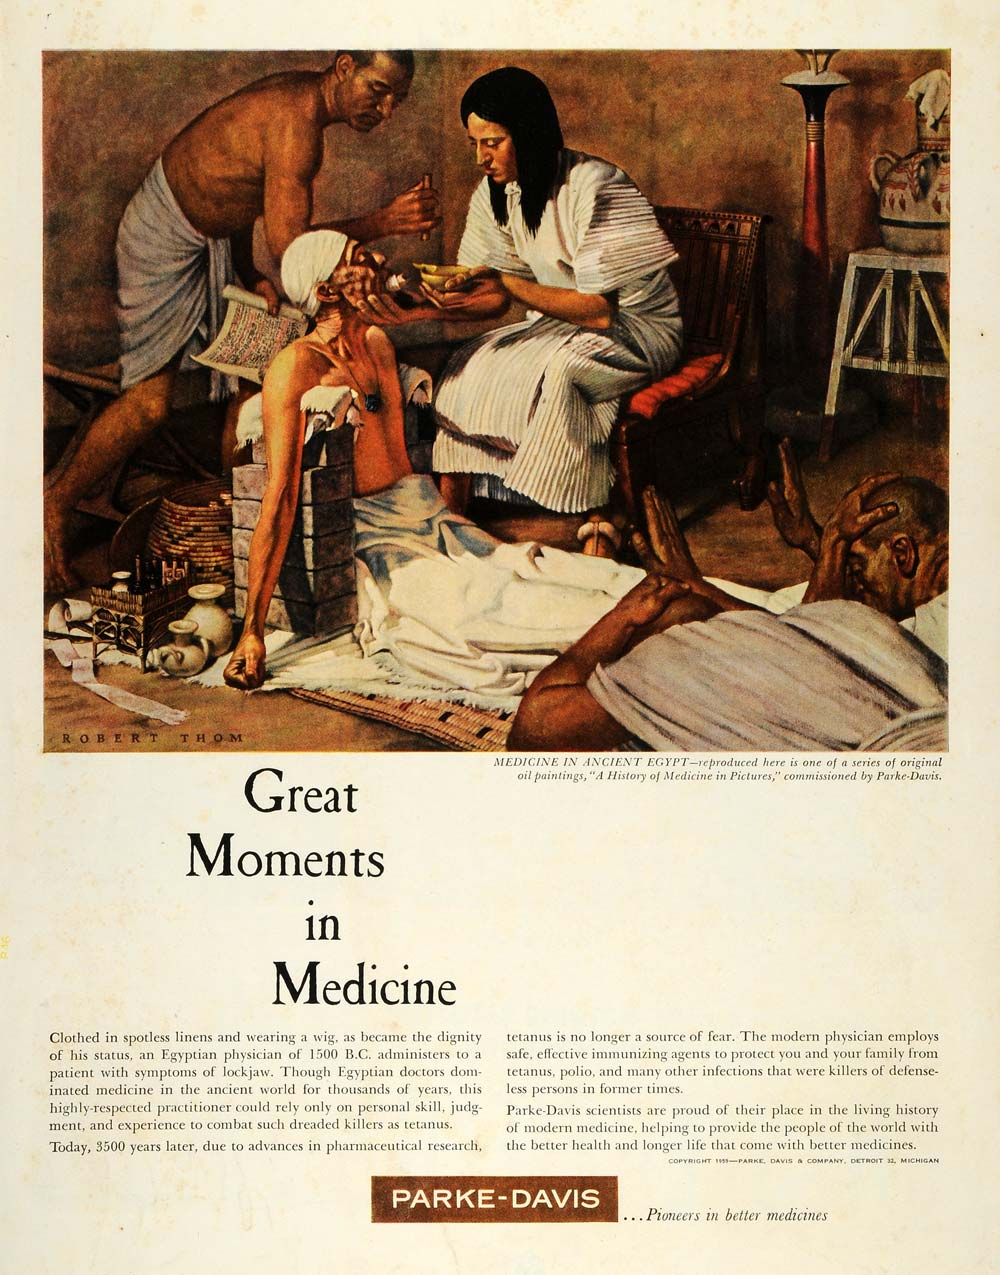 ancient medicine The history of medicine shows how societies have changed in their approach to illness and disease from ancient times to the present early medical traditions include those of babylon, china, egypt and india.